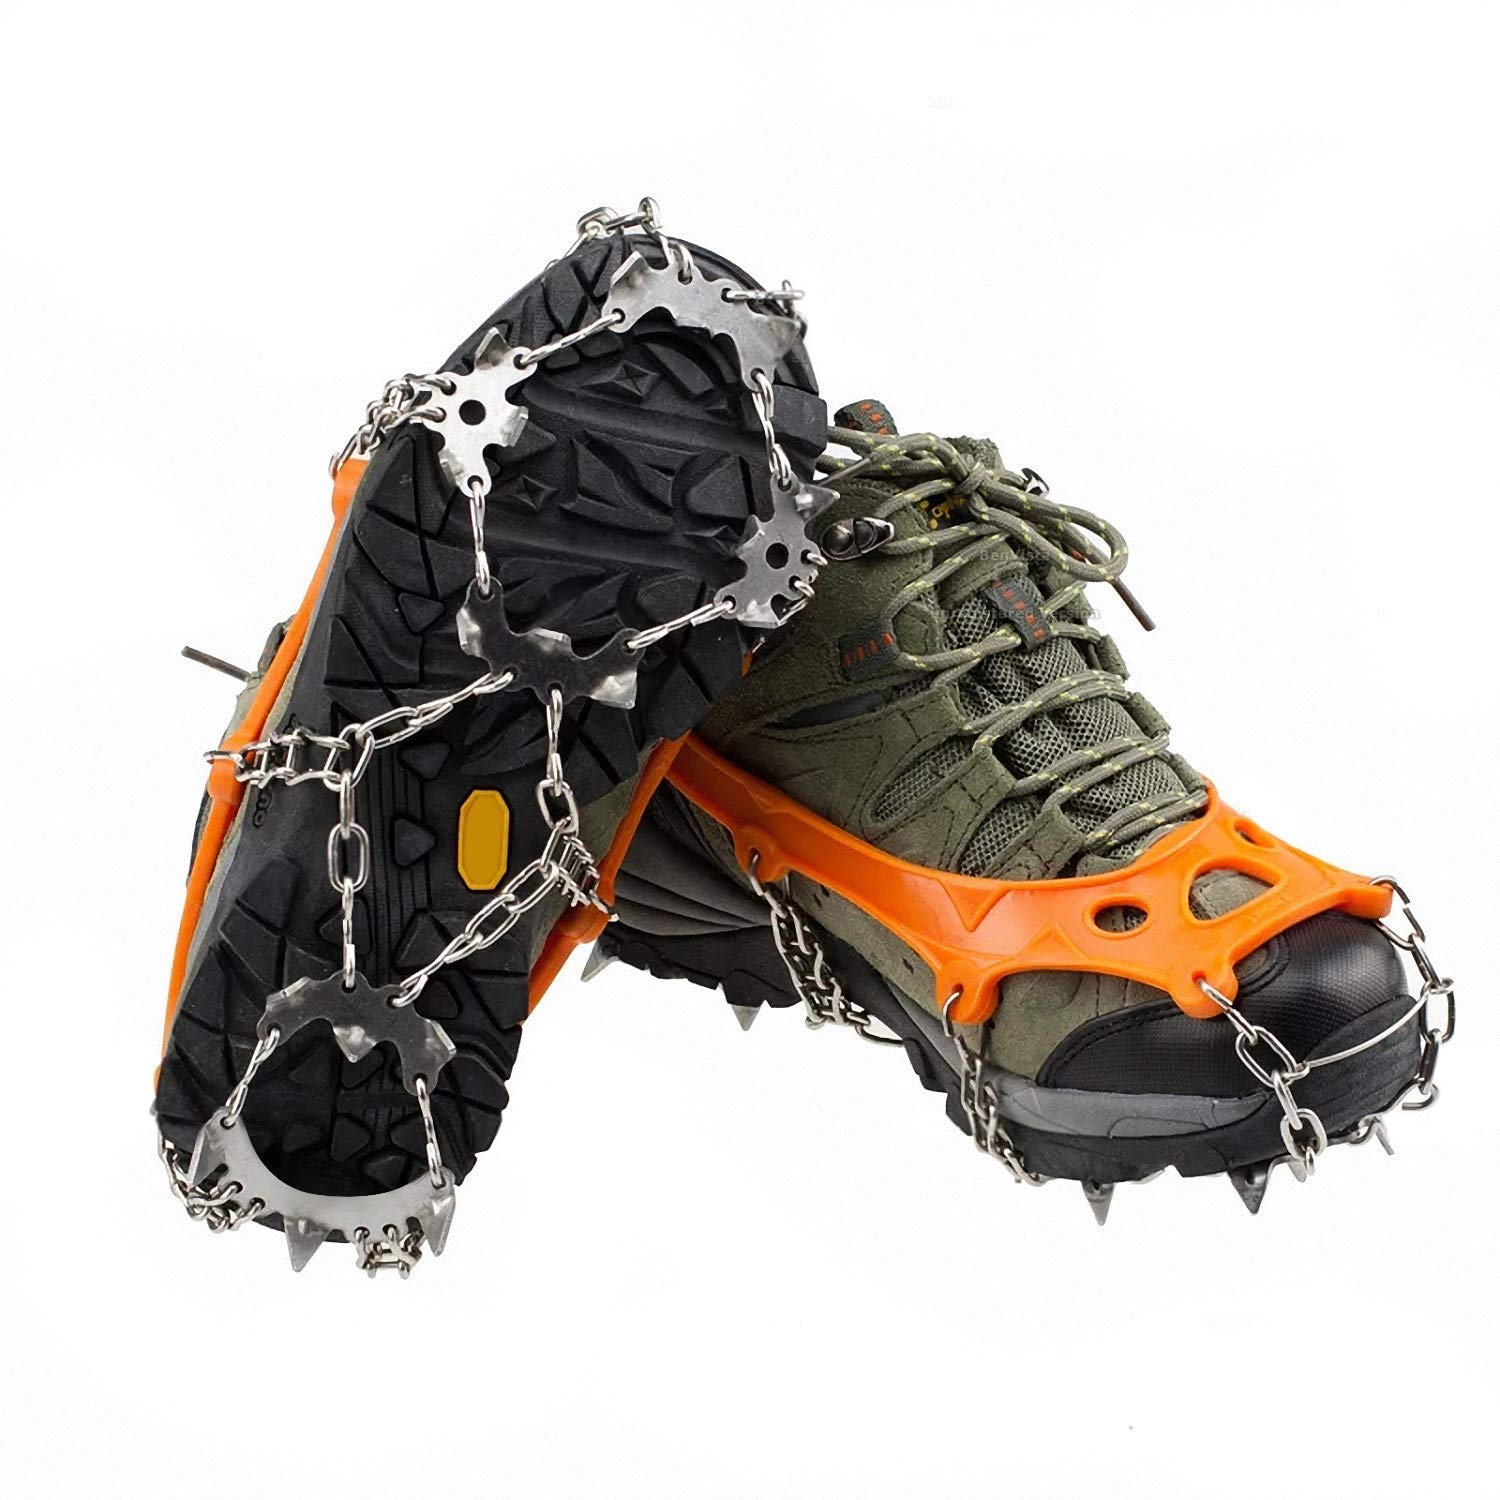 Unisex Ice Cleats Snow Spikes Crampons Anti Slip Shoes Grippers w/ 18 Teeth